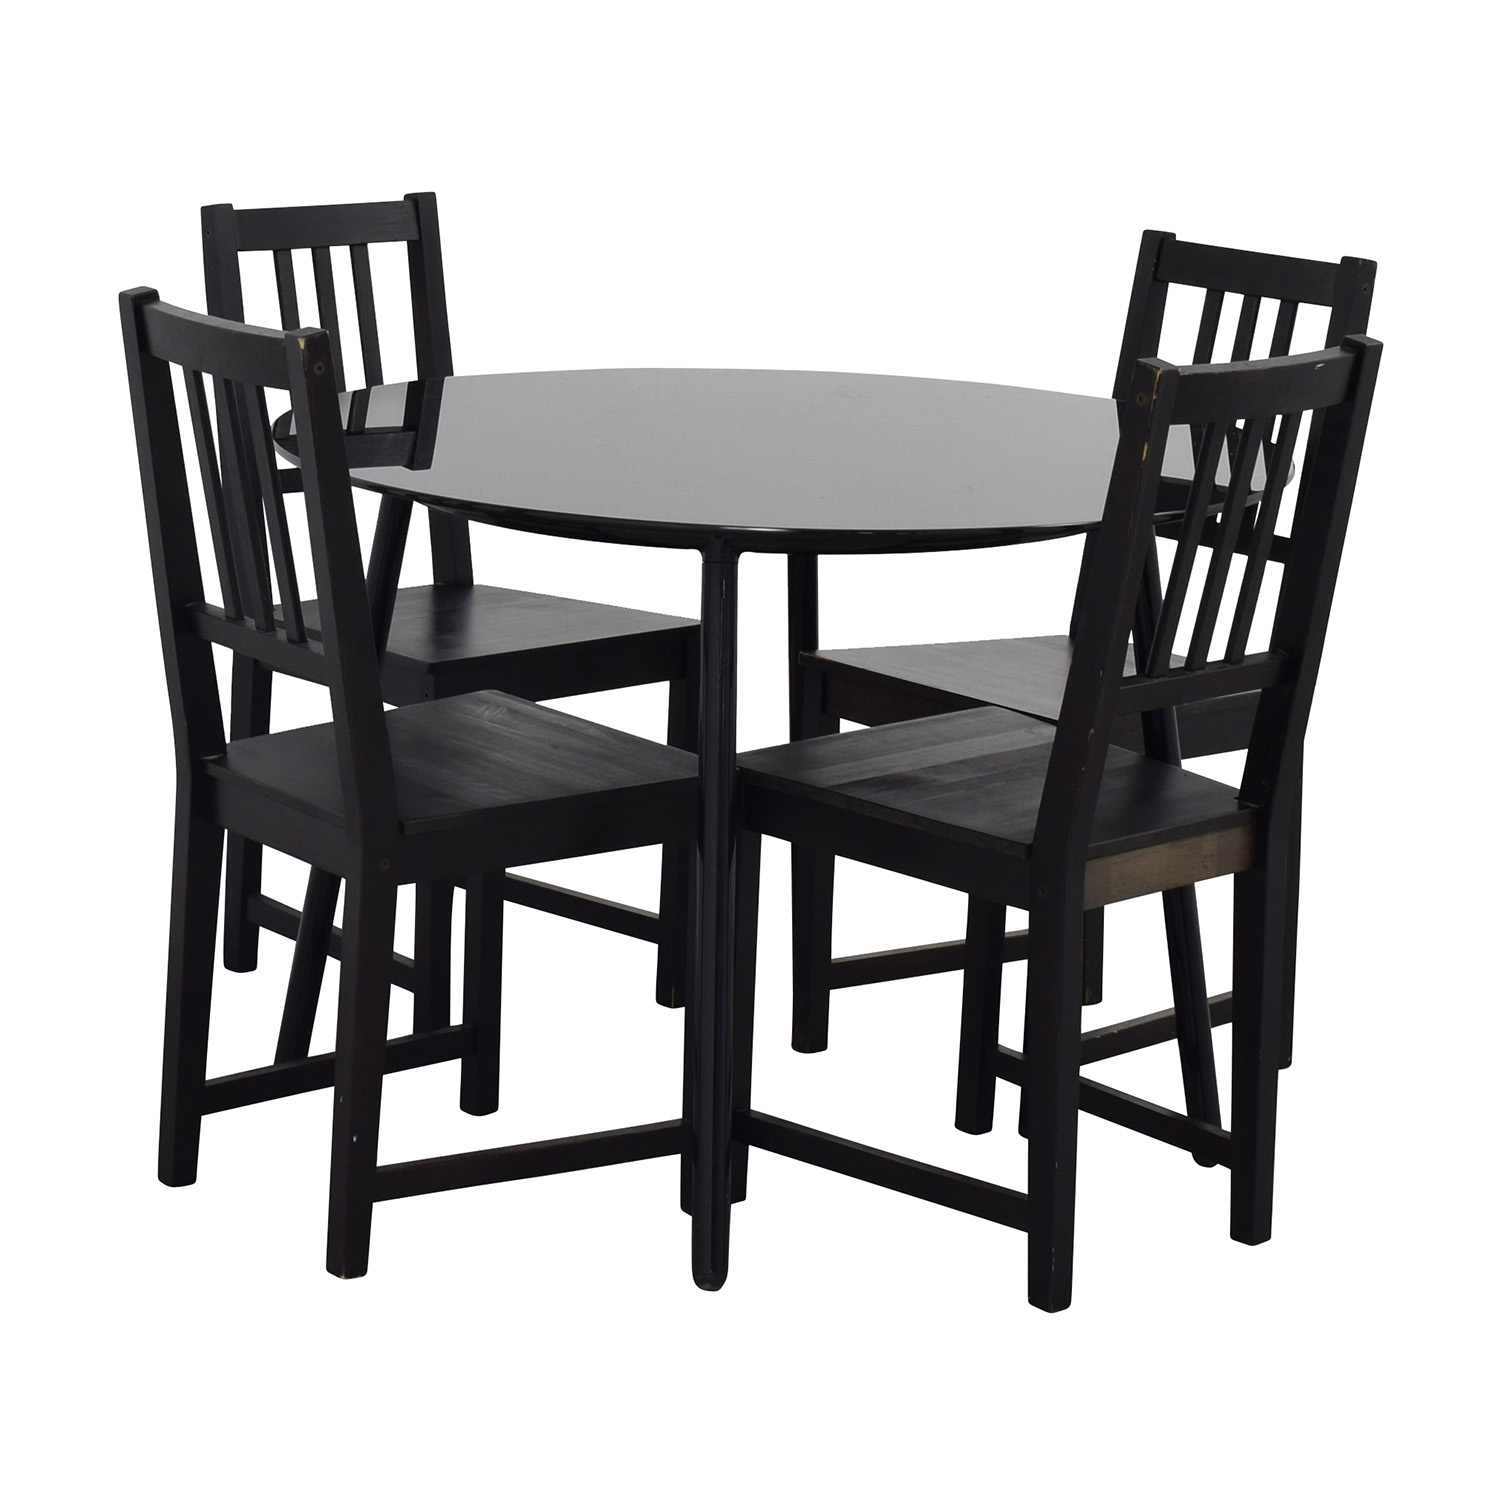 31 off ikea ikea glass and wood table and chairs tables for Ikea dining sets usa